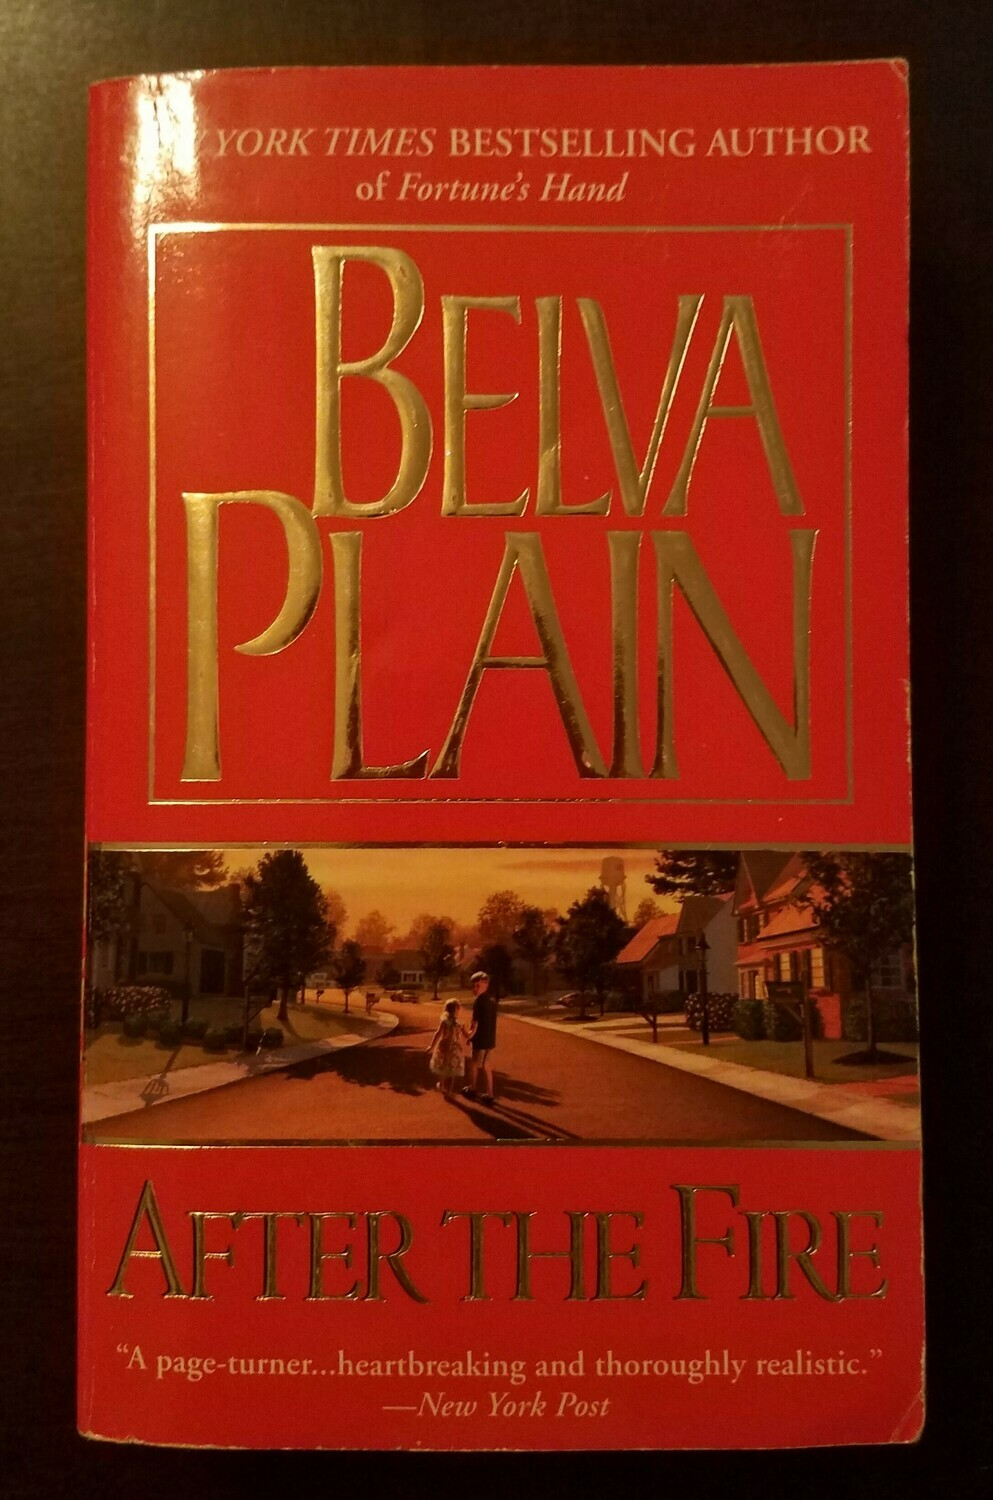 After the Fire by Belva Plain